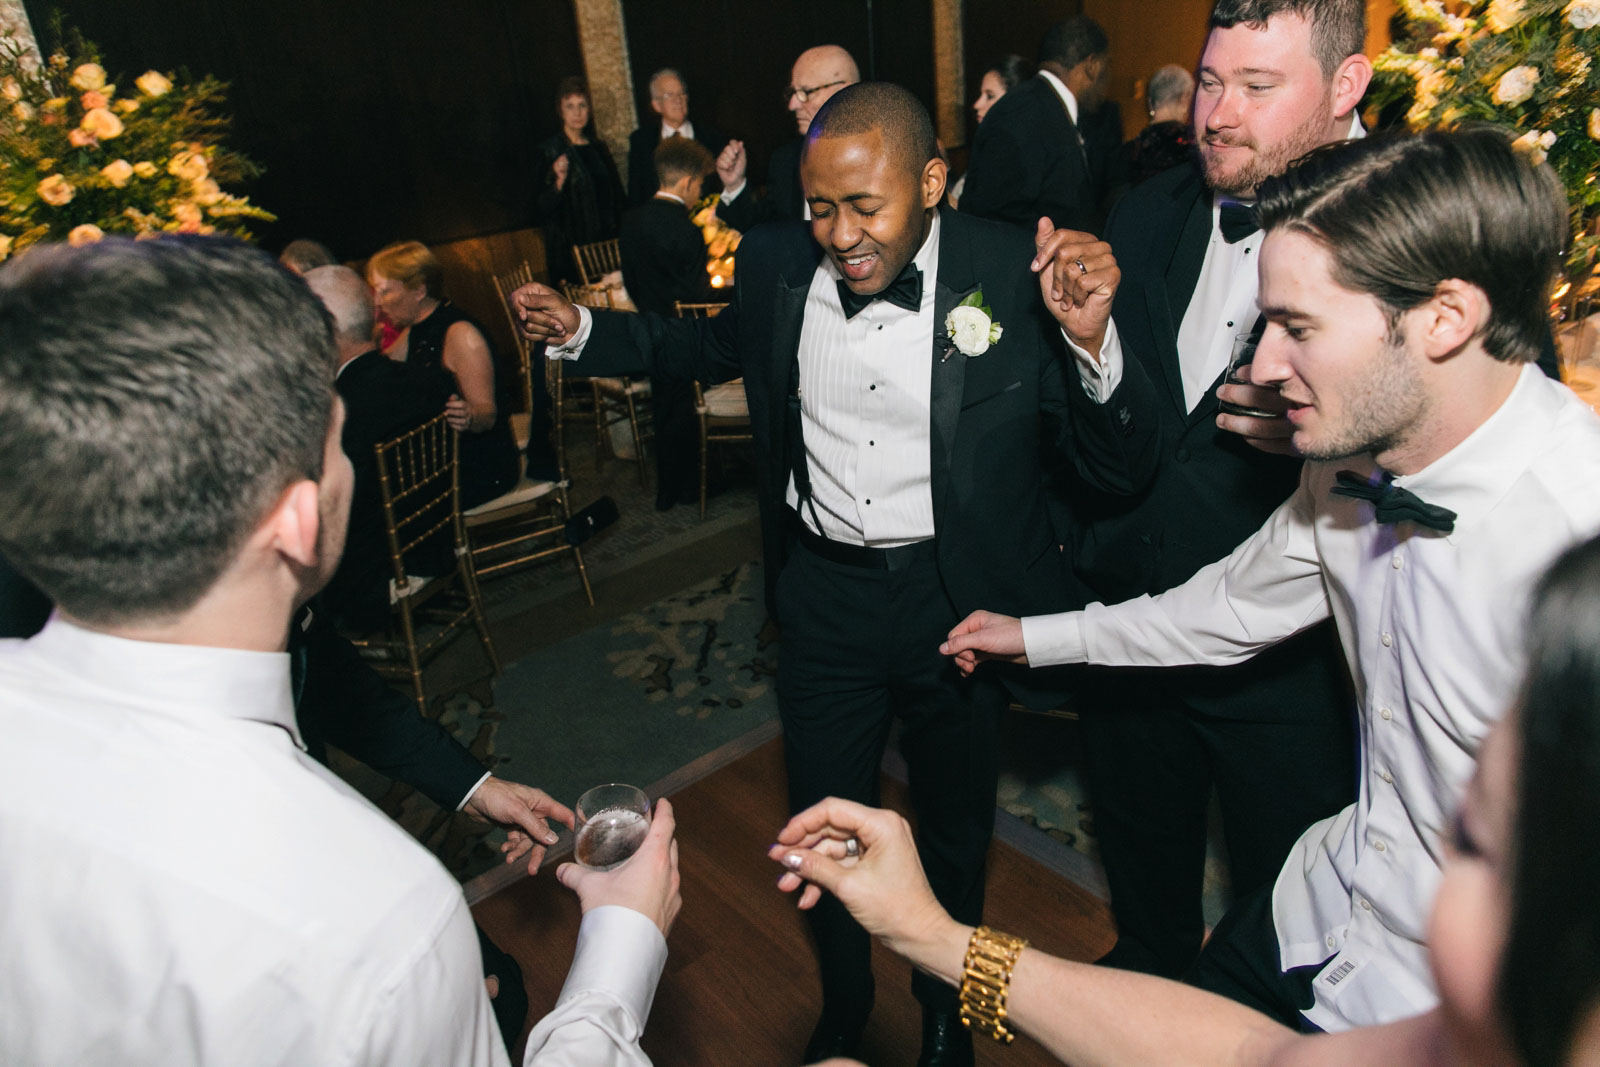 Groom getting jiggy with it on the dance floor at interracial wedding reception in Boston